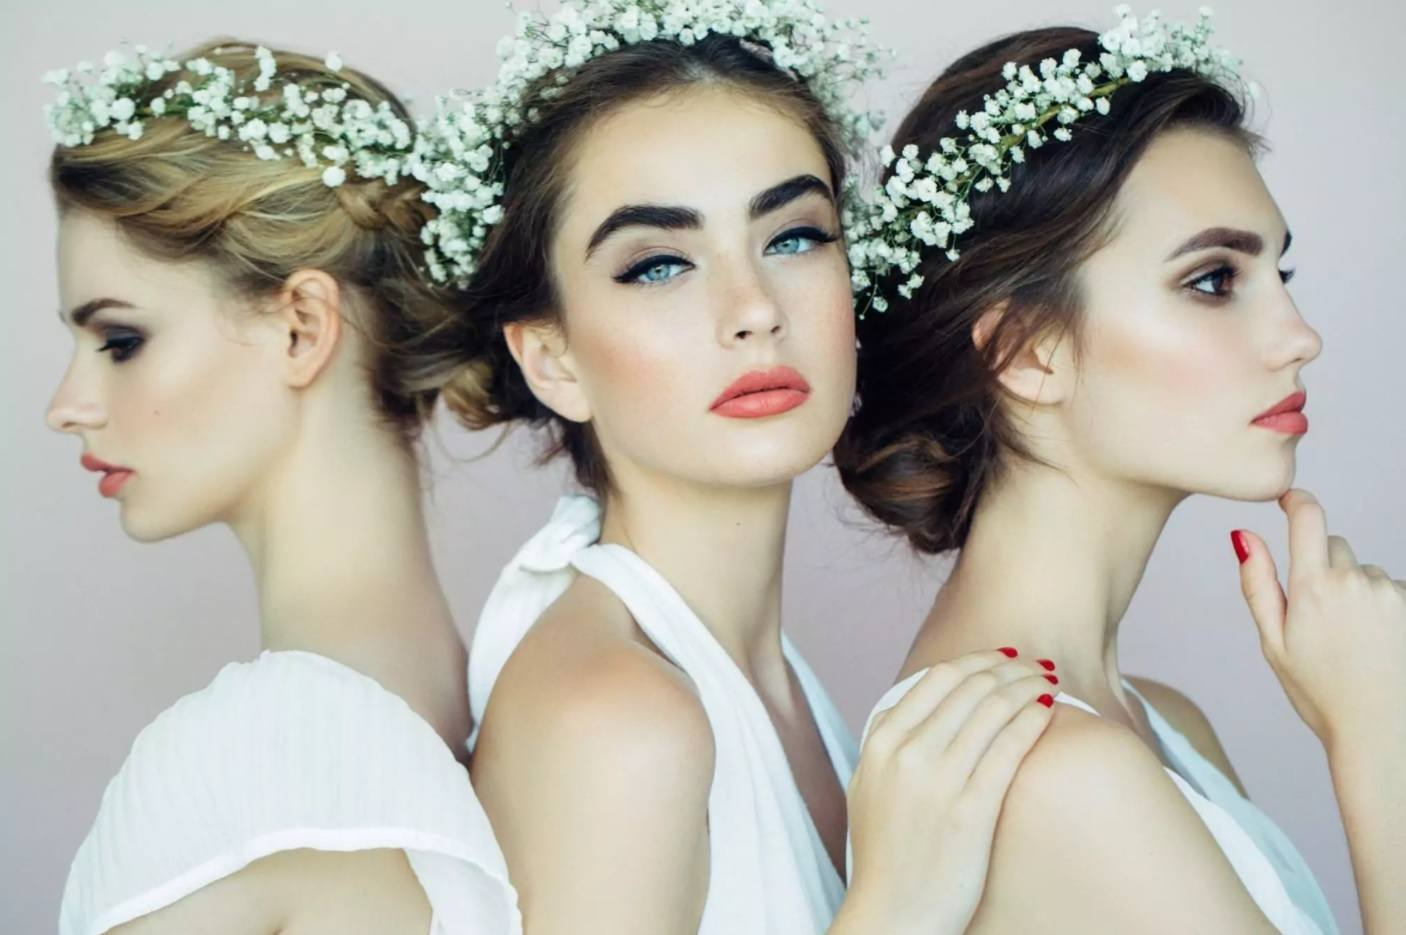 three bridal models with flower crown hair accessories